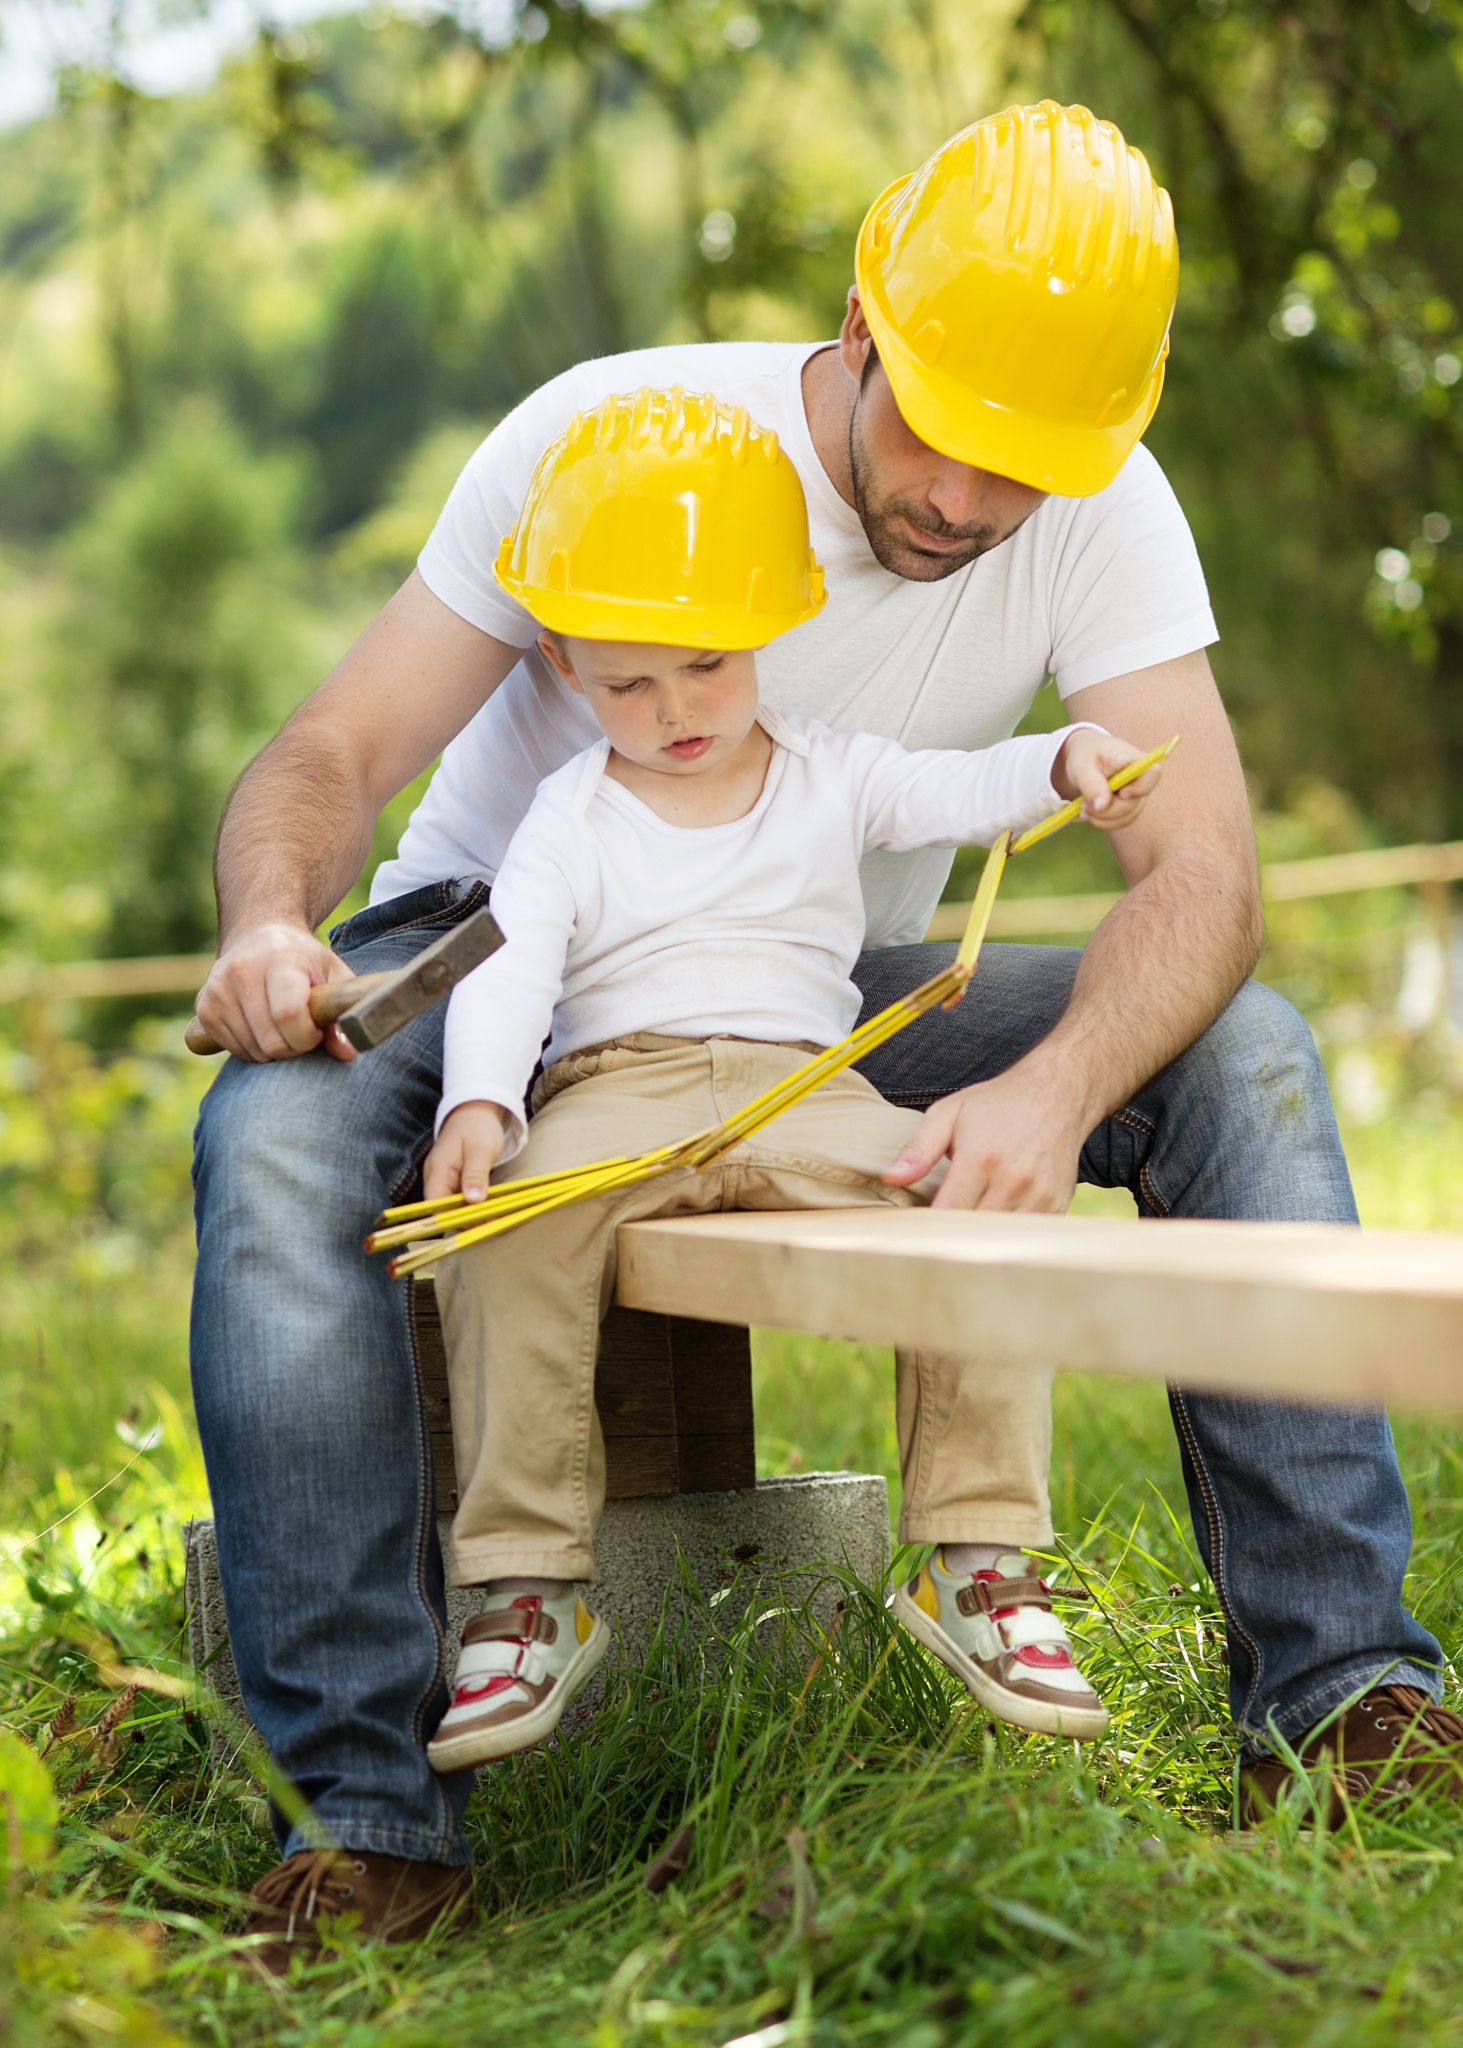 Little Son Helping His Father With Building Work United By